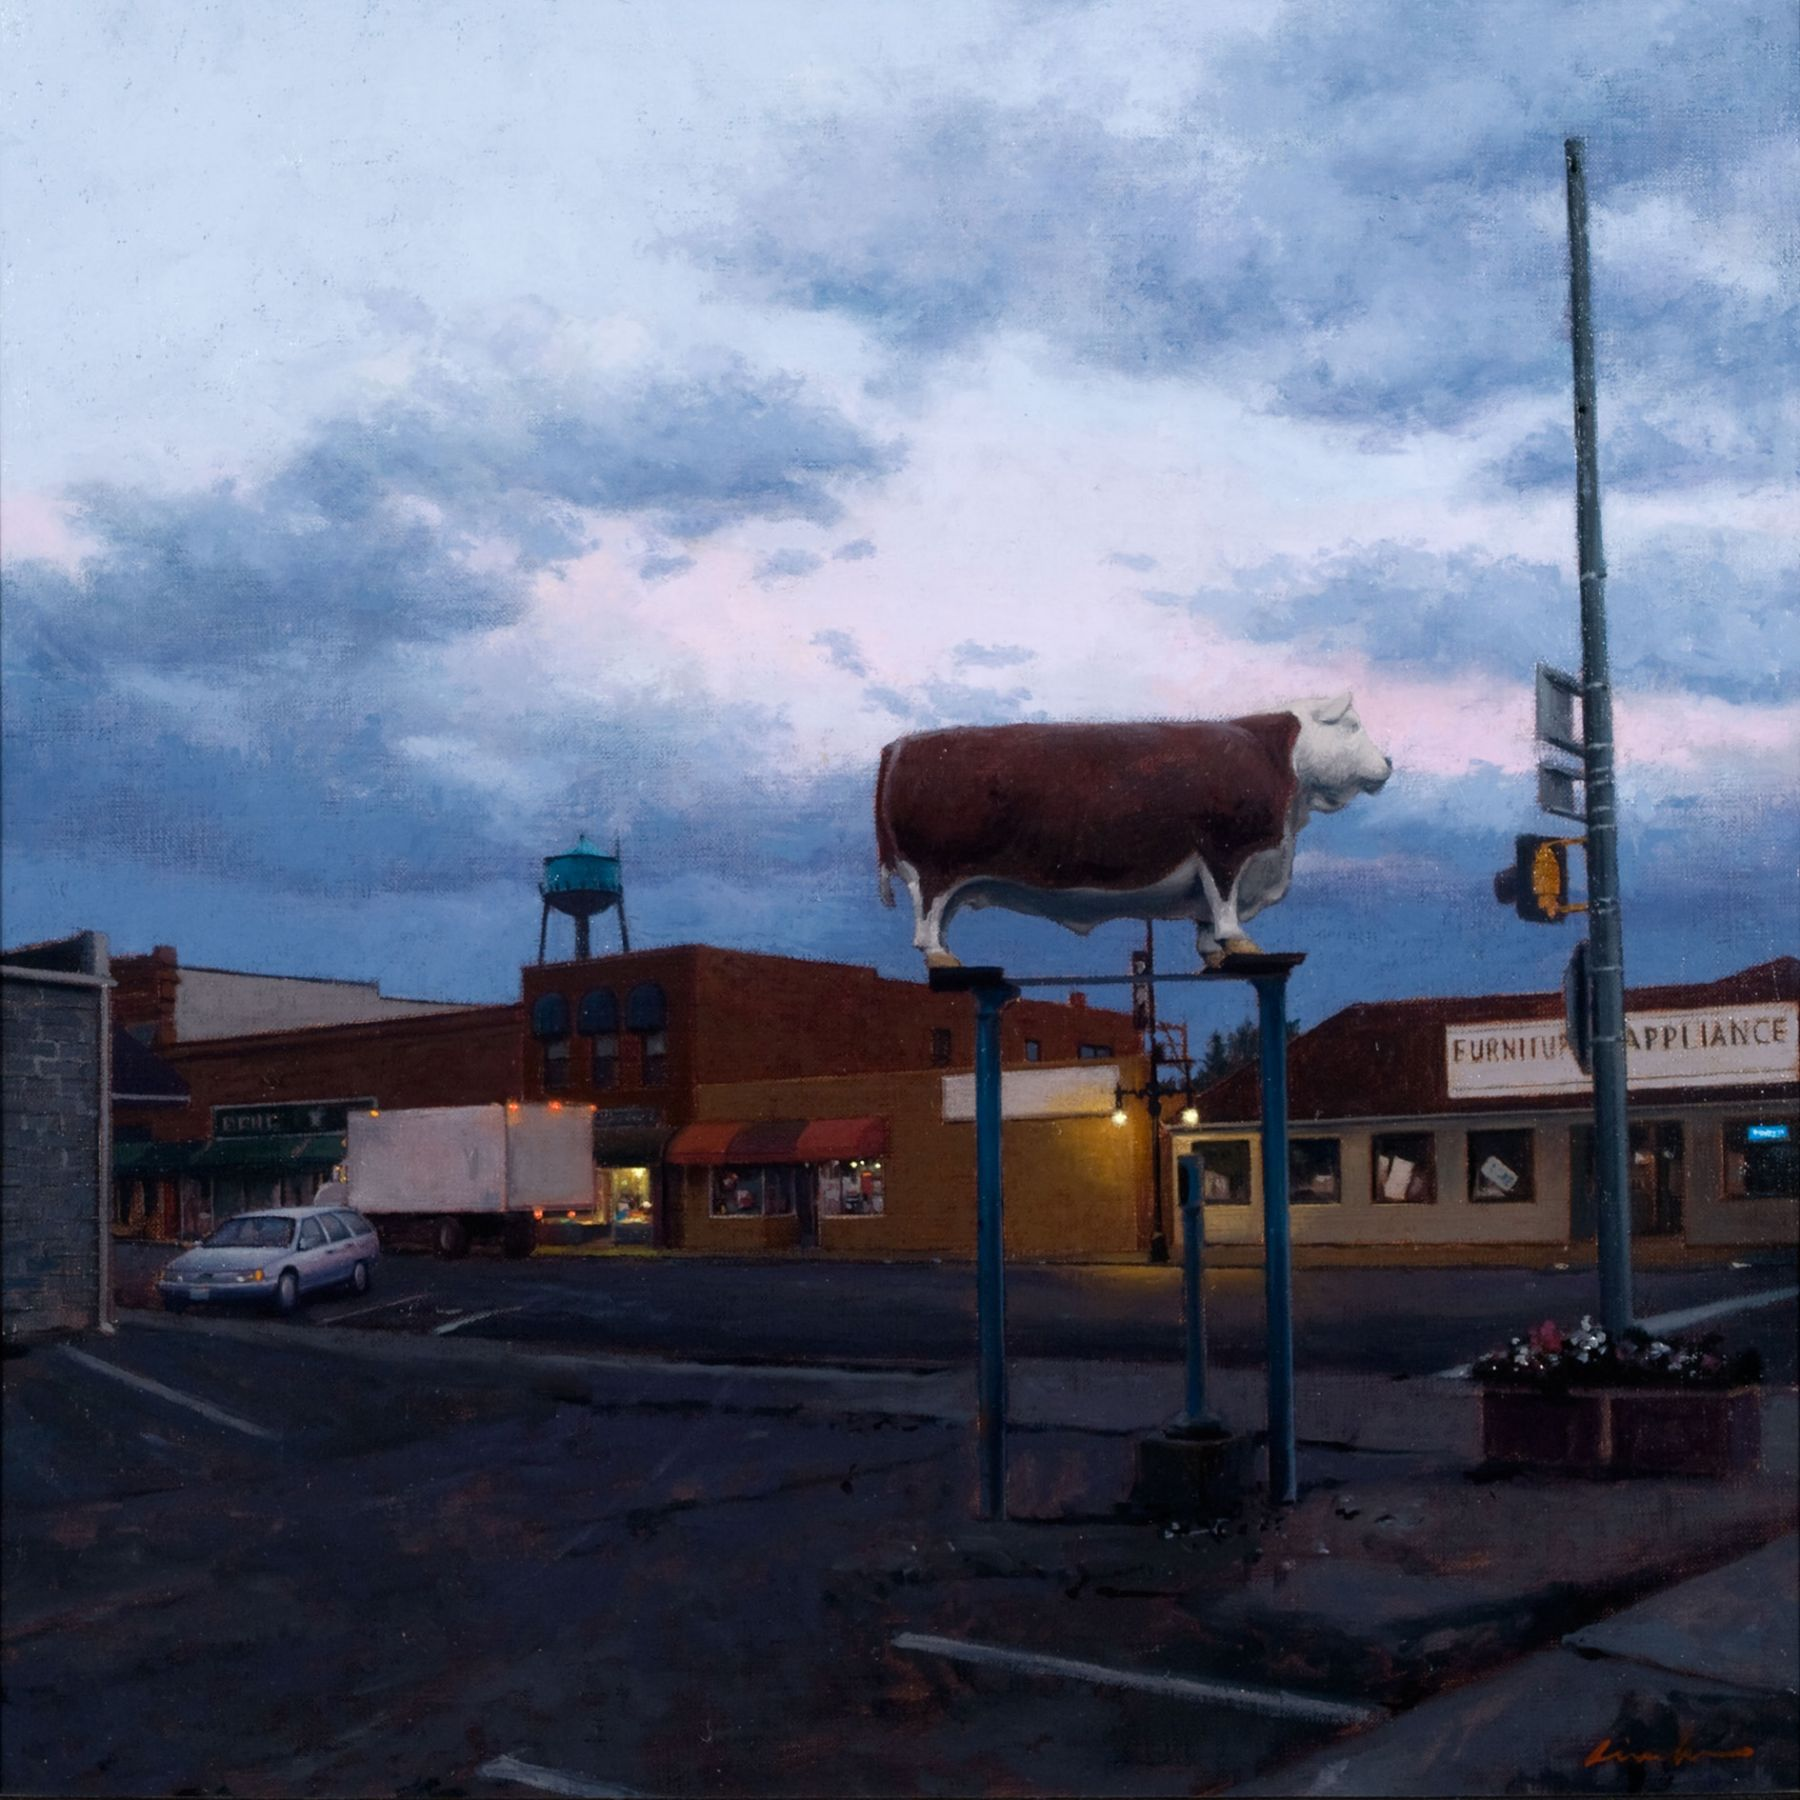 Linden Frederick, Mascot (SOLD), 2007, oil on panel, 12 1/4 x 12 1/4 inches